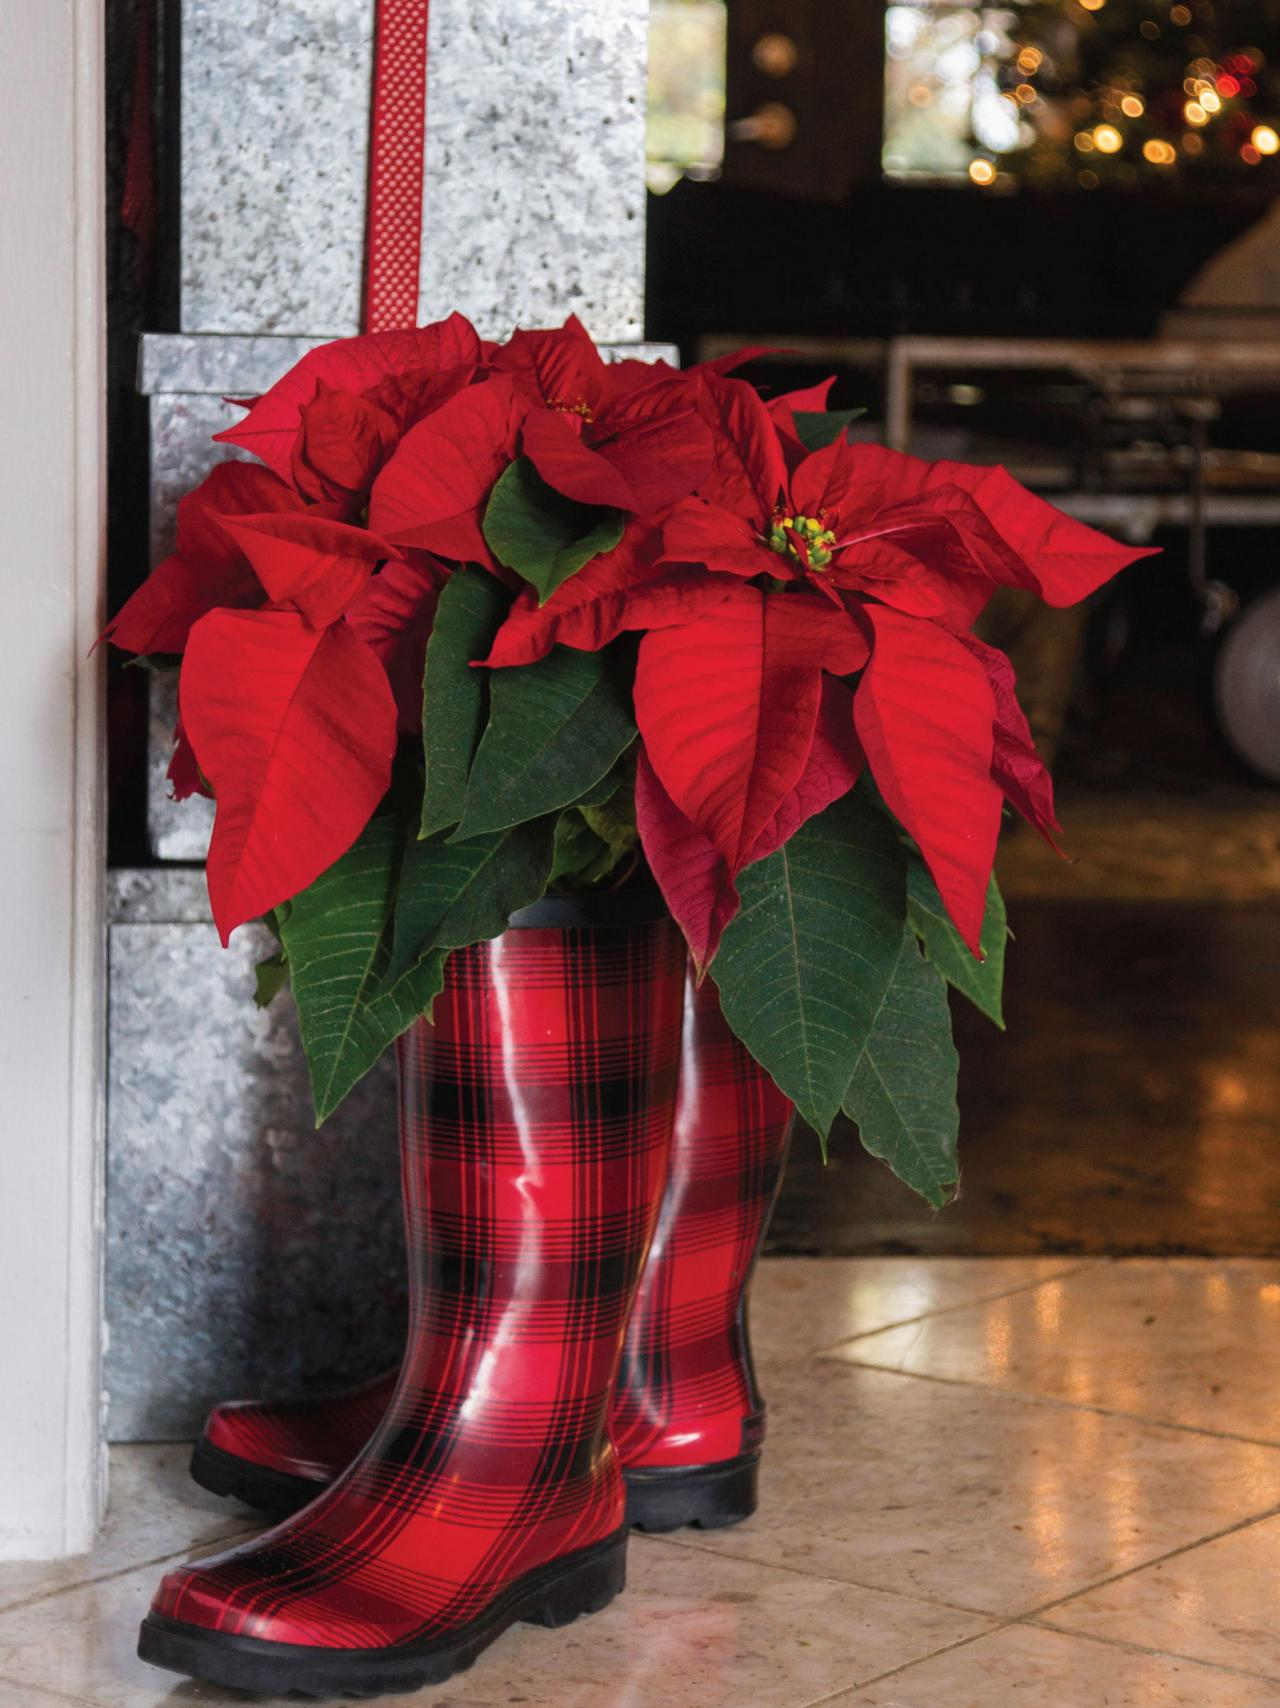 20 ways to decorate with poinsettias for the holidays for Poinsettia arrangements